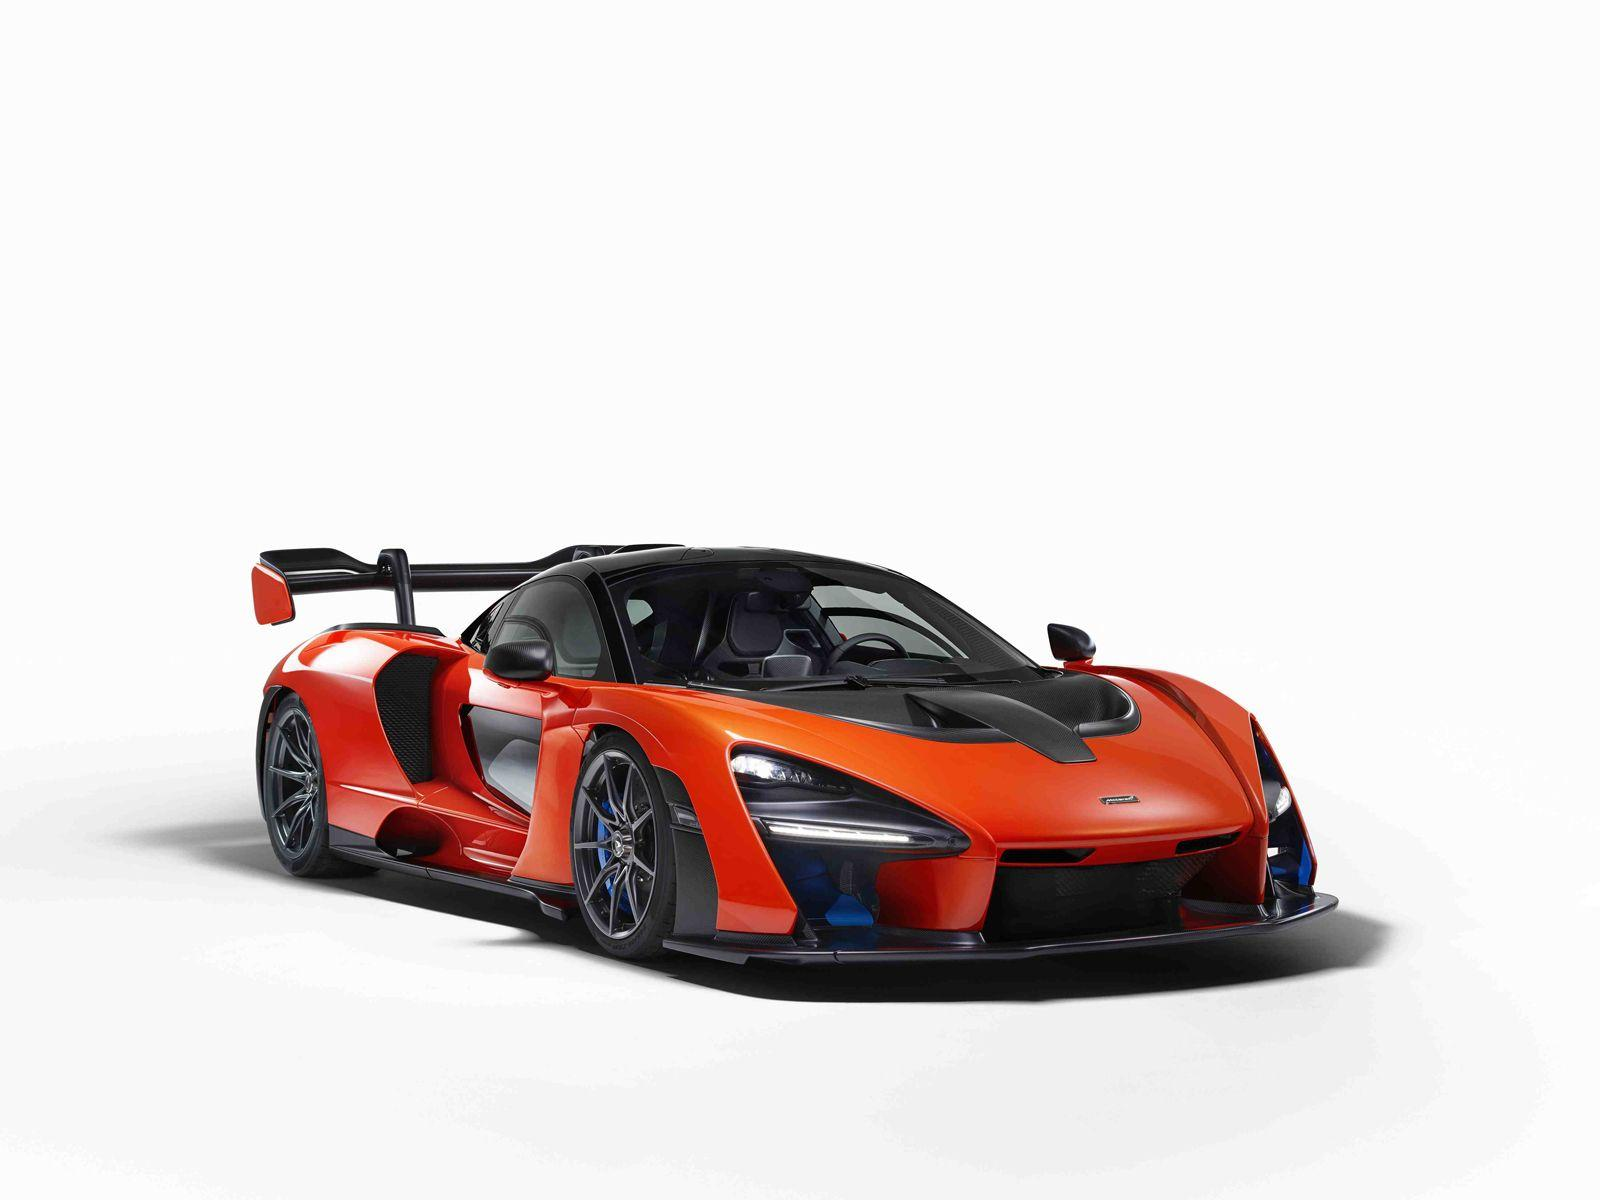 The McLaren Senna is one of the Wildest Road Legal Cars Ever ...